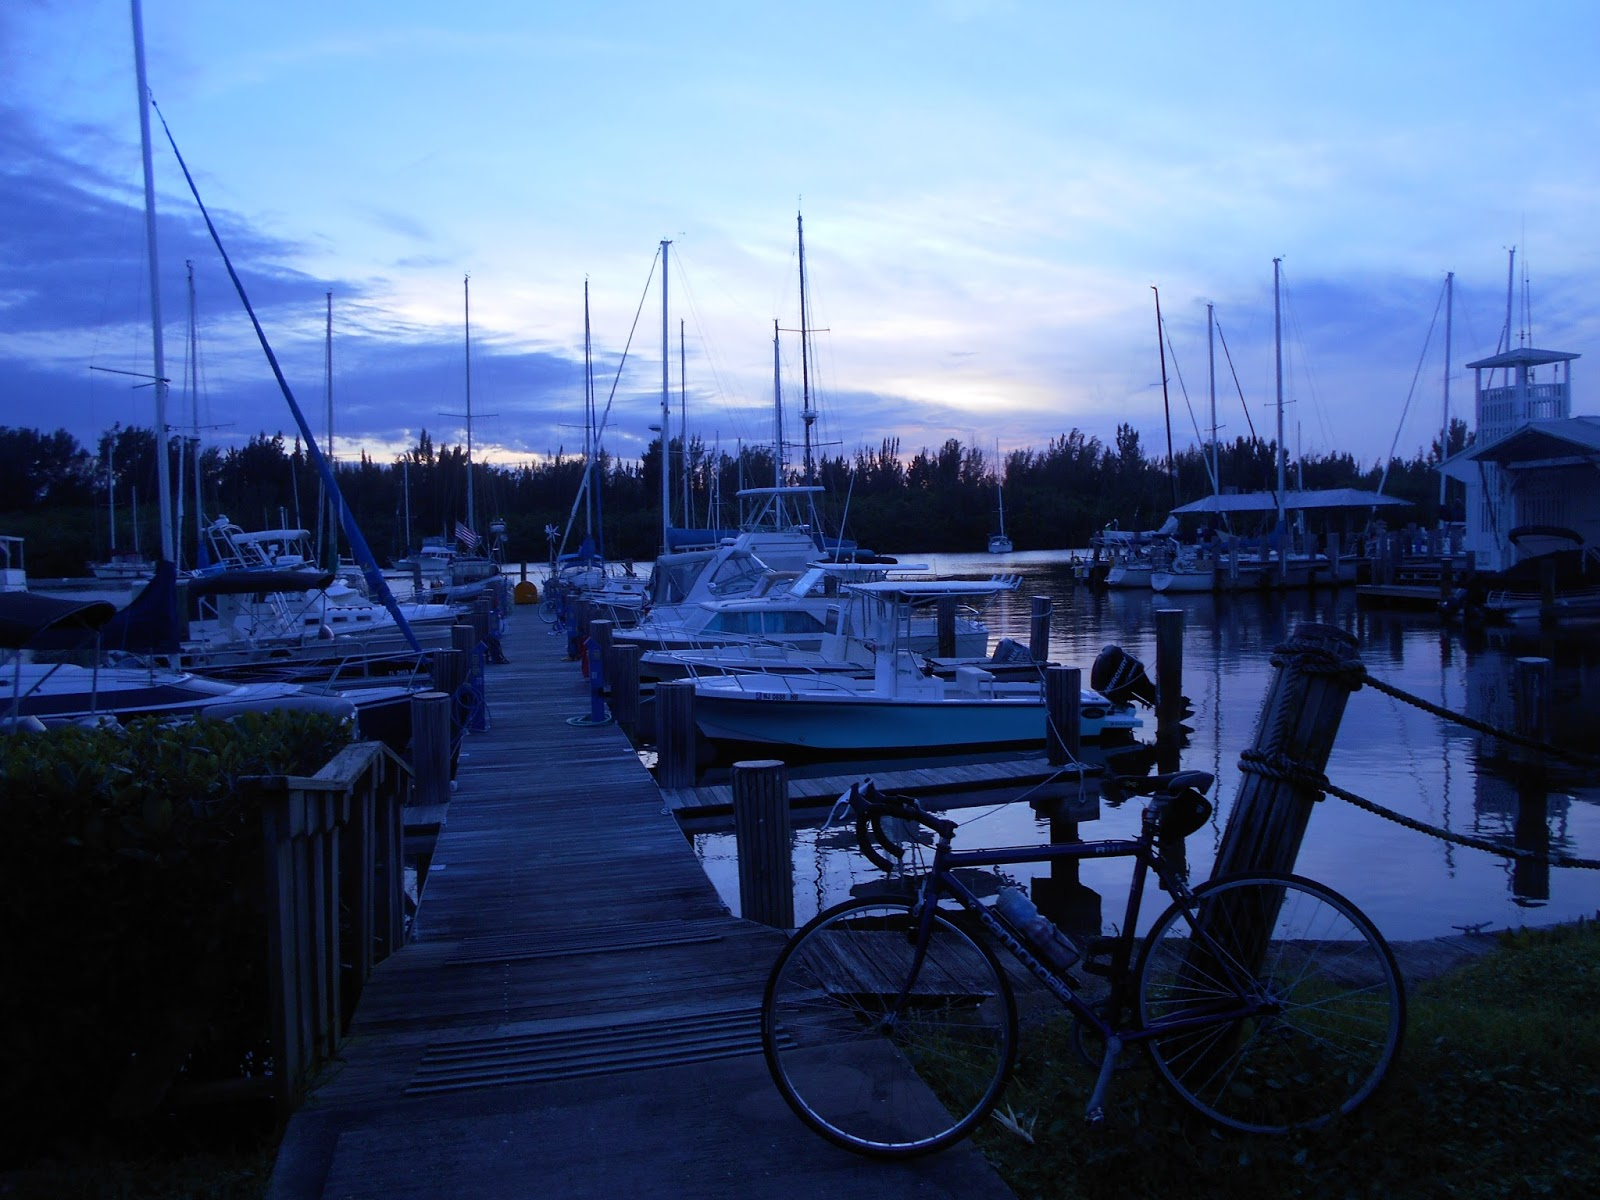 Bicycle stories a bicycle life in photos for Vero beach fishing pier